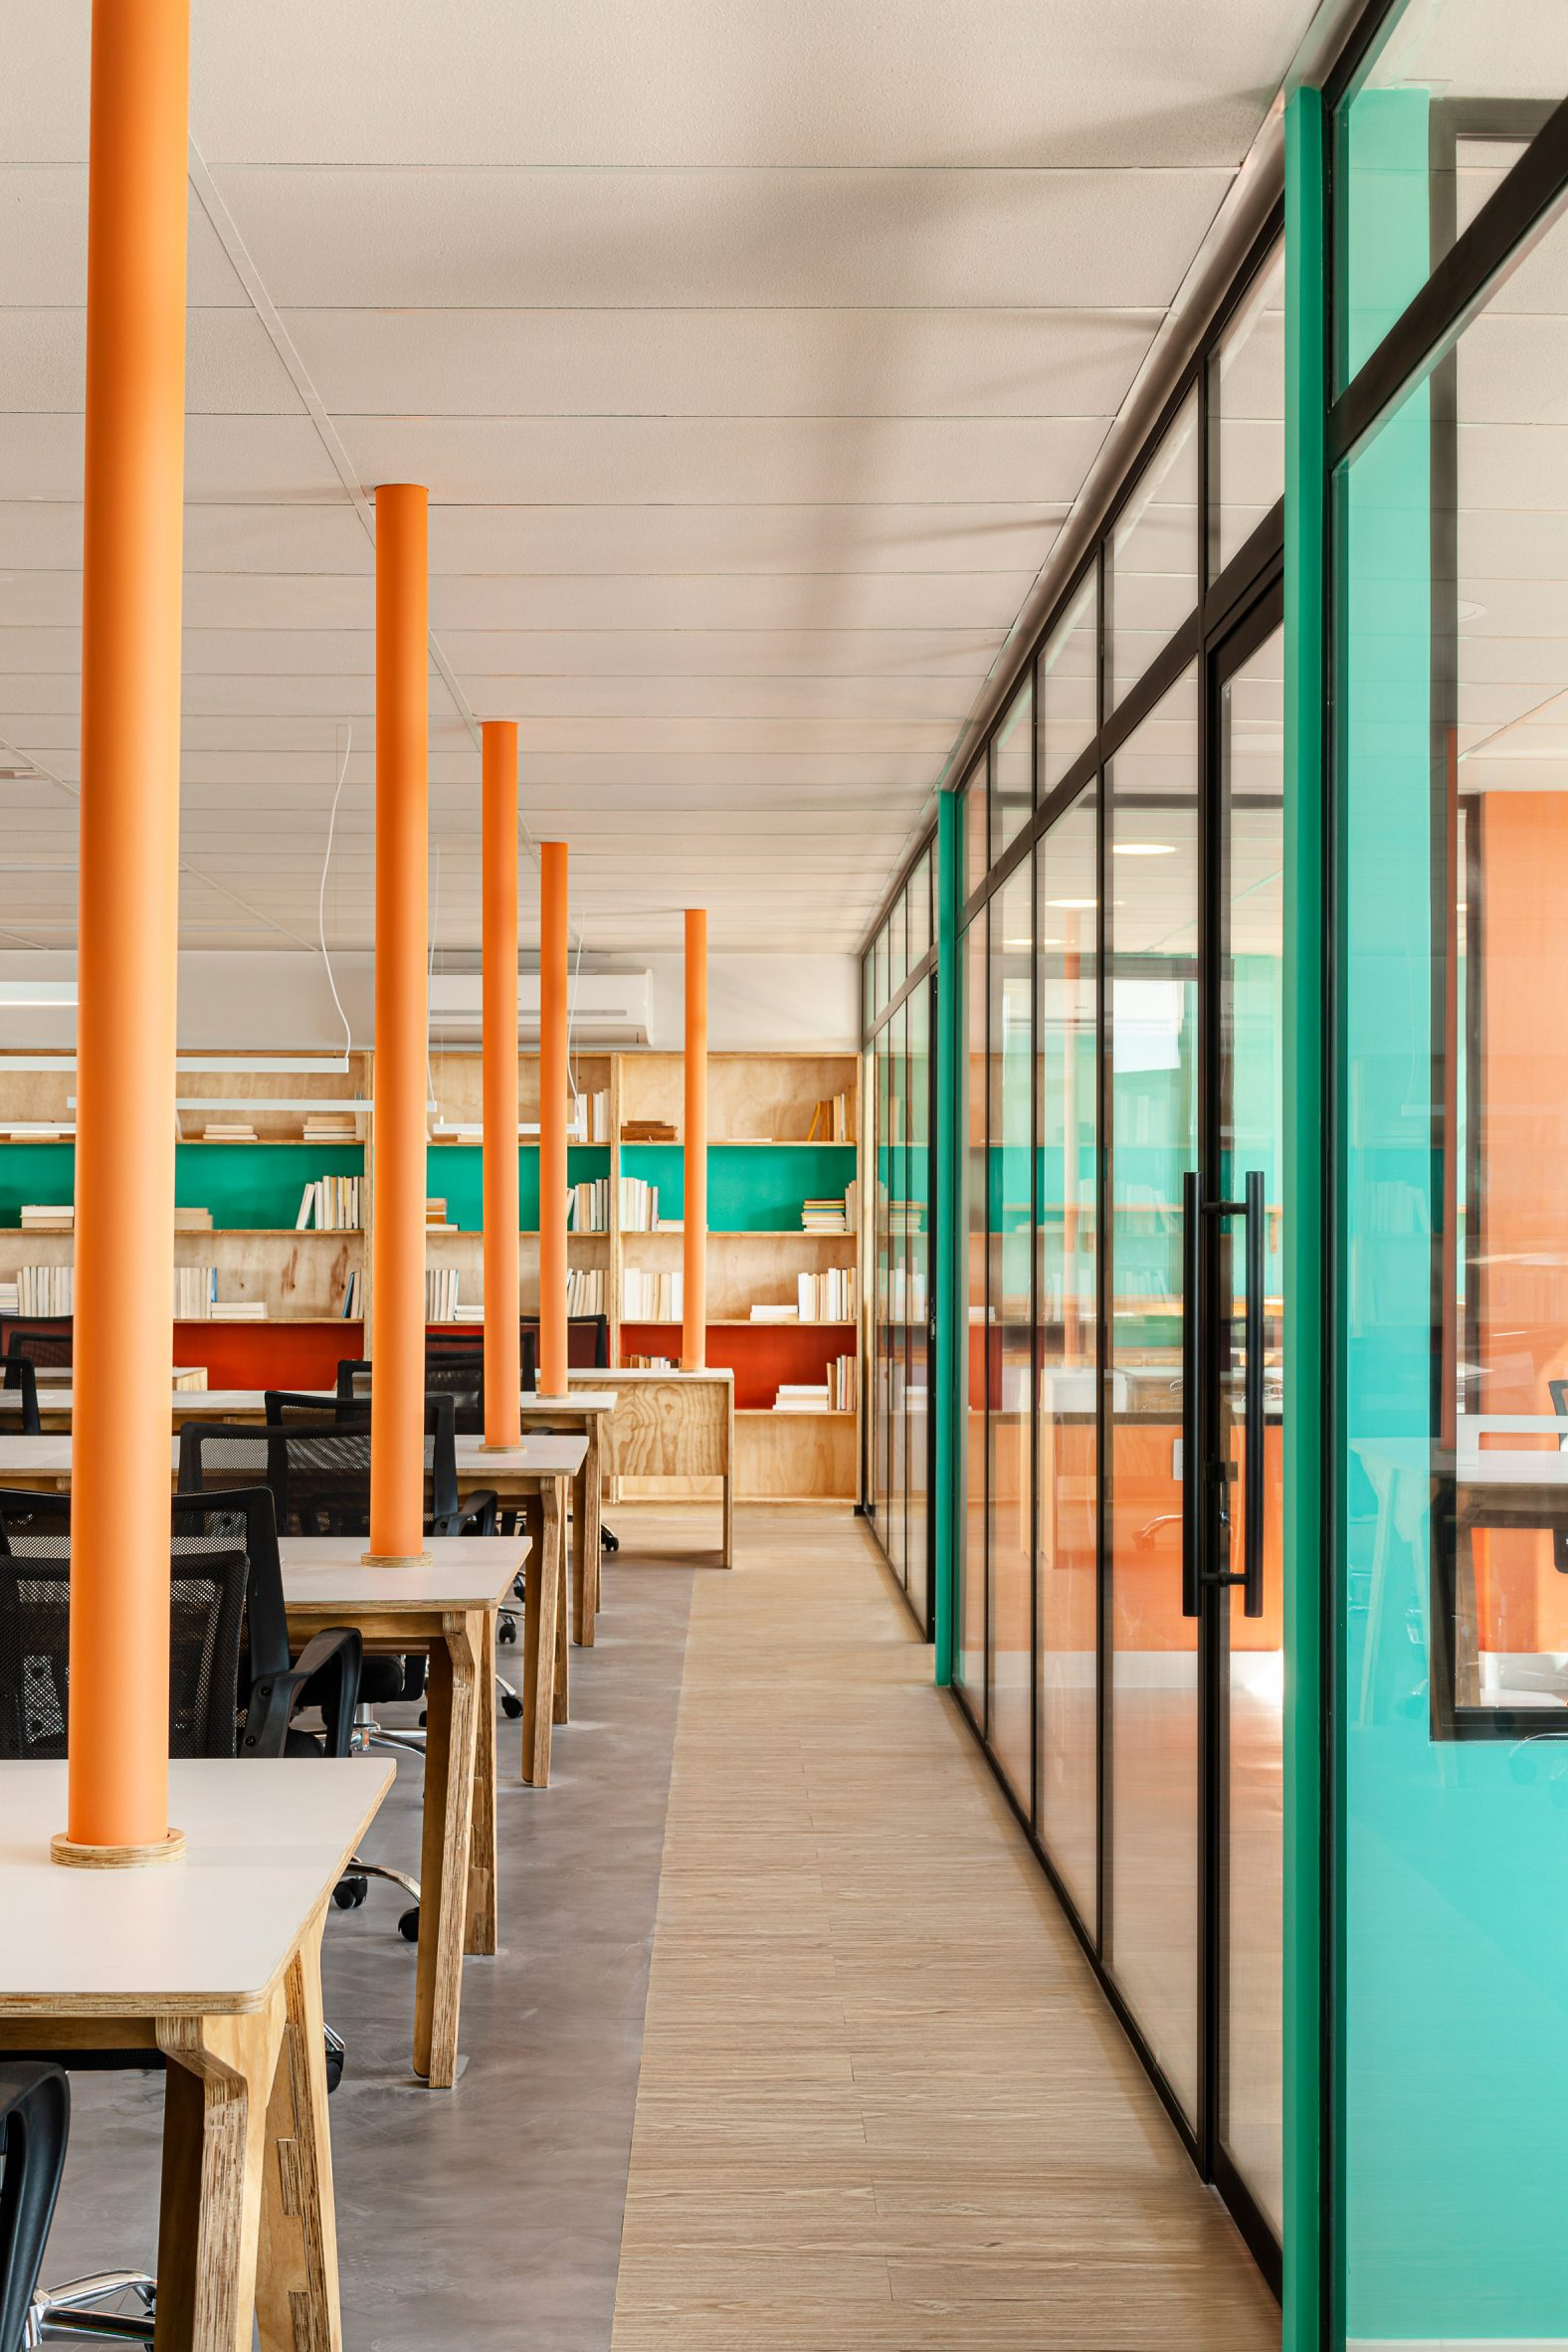 Glazing separates private offices from the main areas